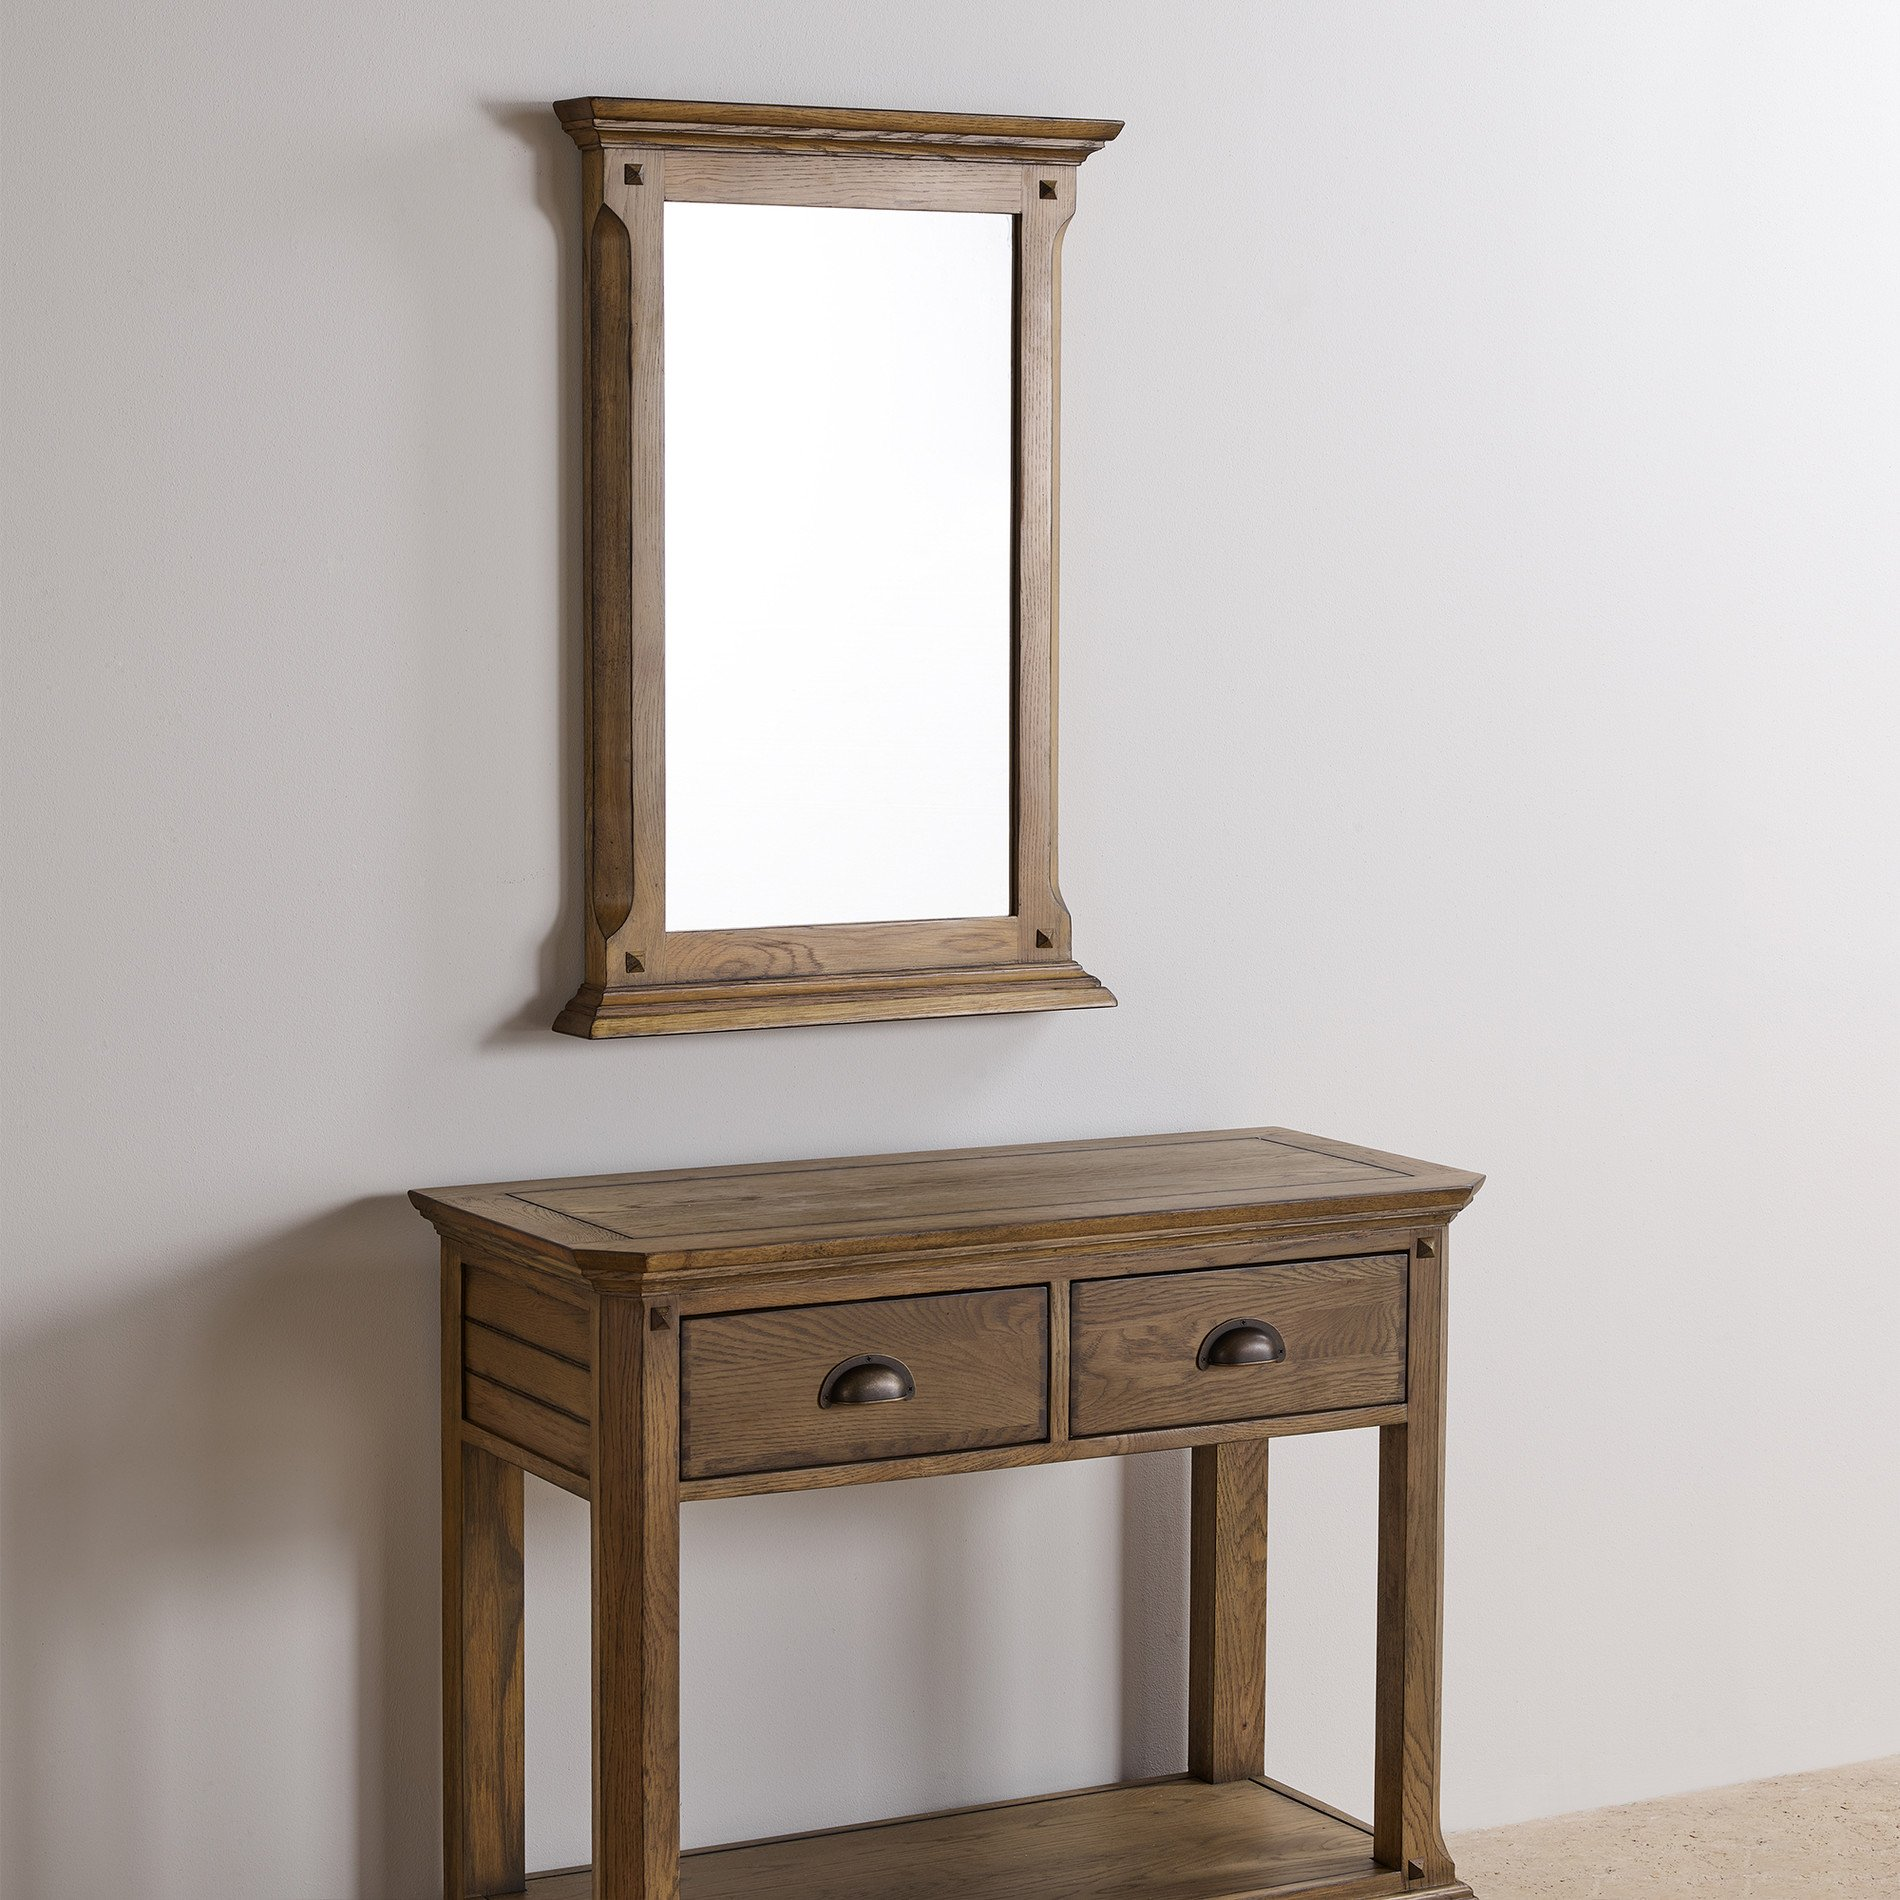 Manor house solid oak 900mm x 600mm wall mirror for Mirror 900 x 600